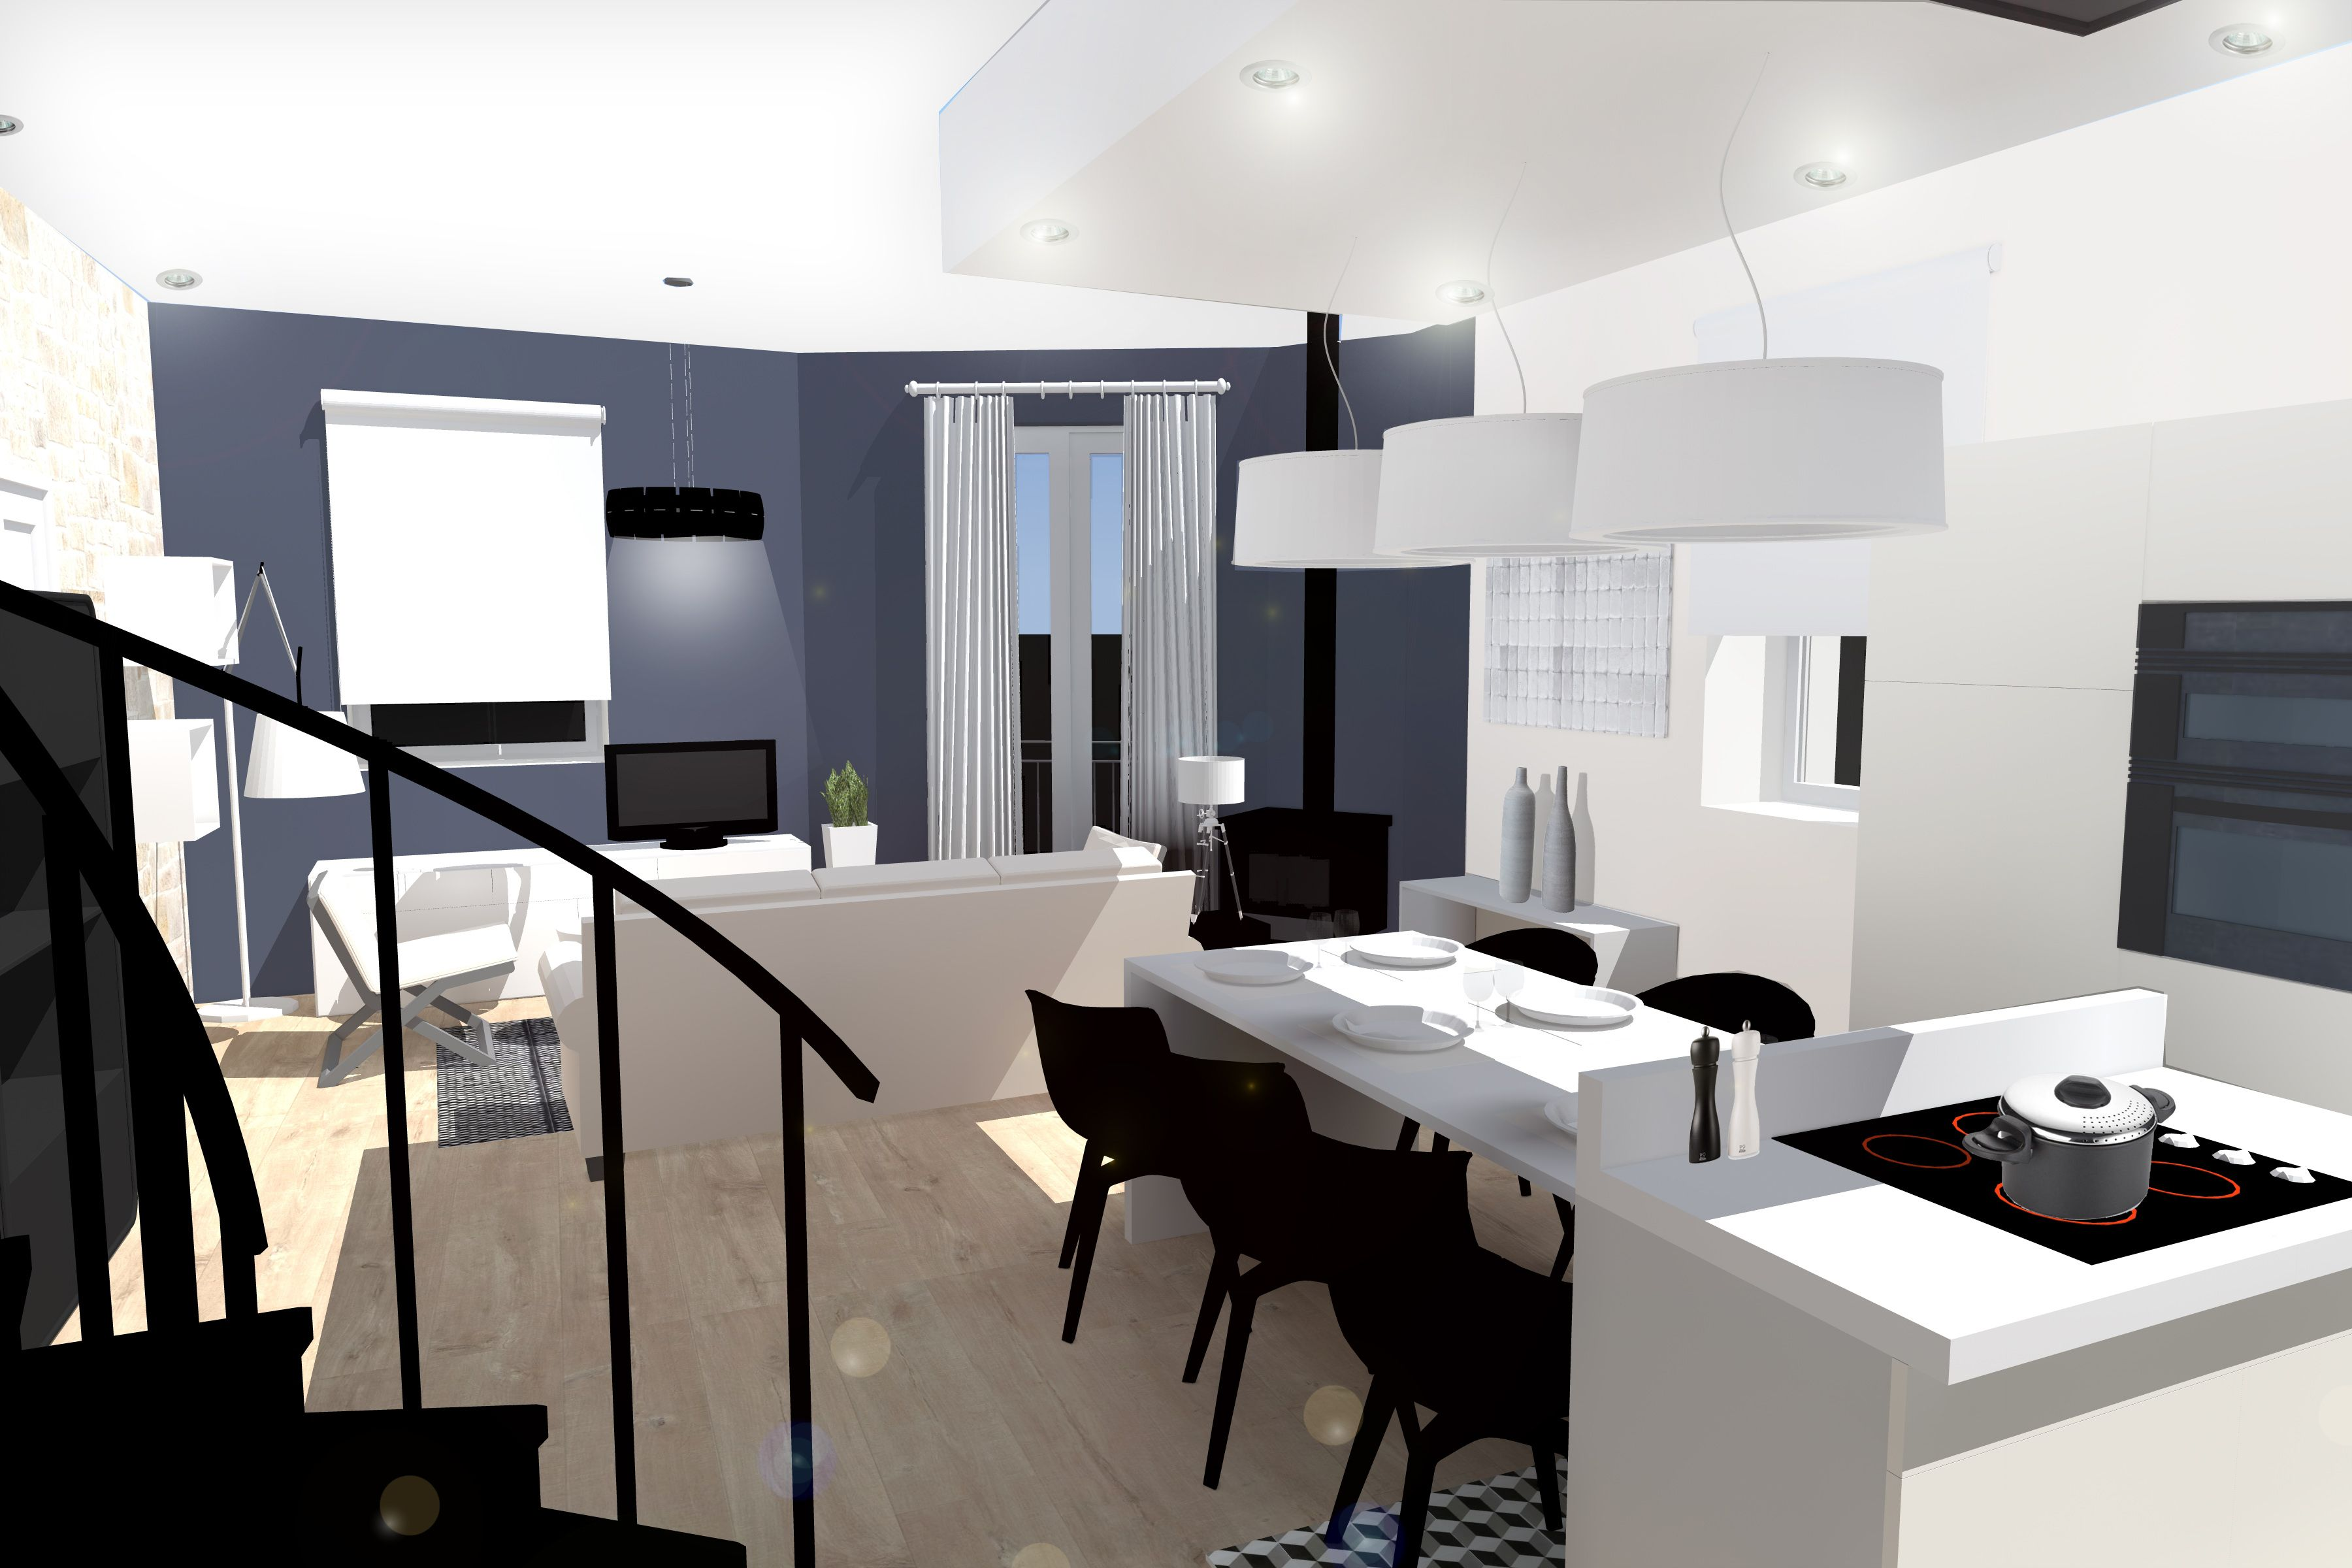 Appartement esprit loft am nagement et d coration par for Amenagement salon cuisine ouverte 35m2